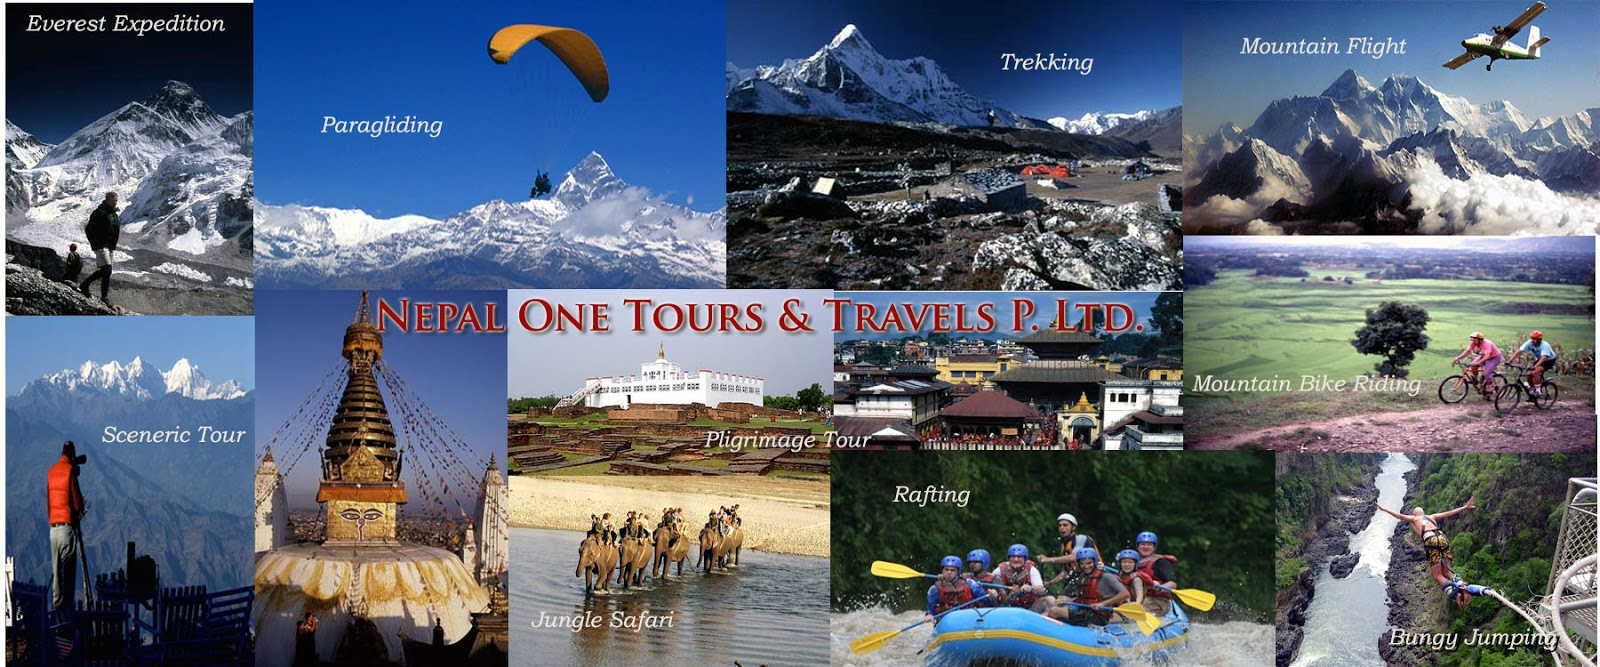 Nepal Tour Operator Travel Agencies Company Best Packages Trade Trekking Trek